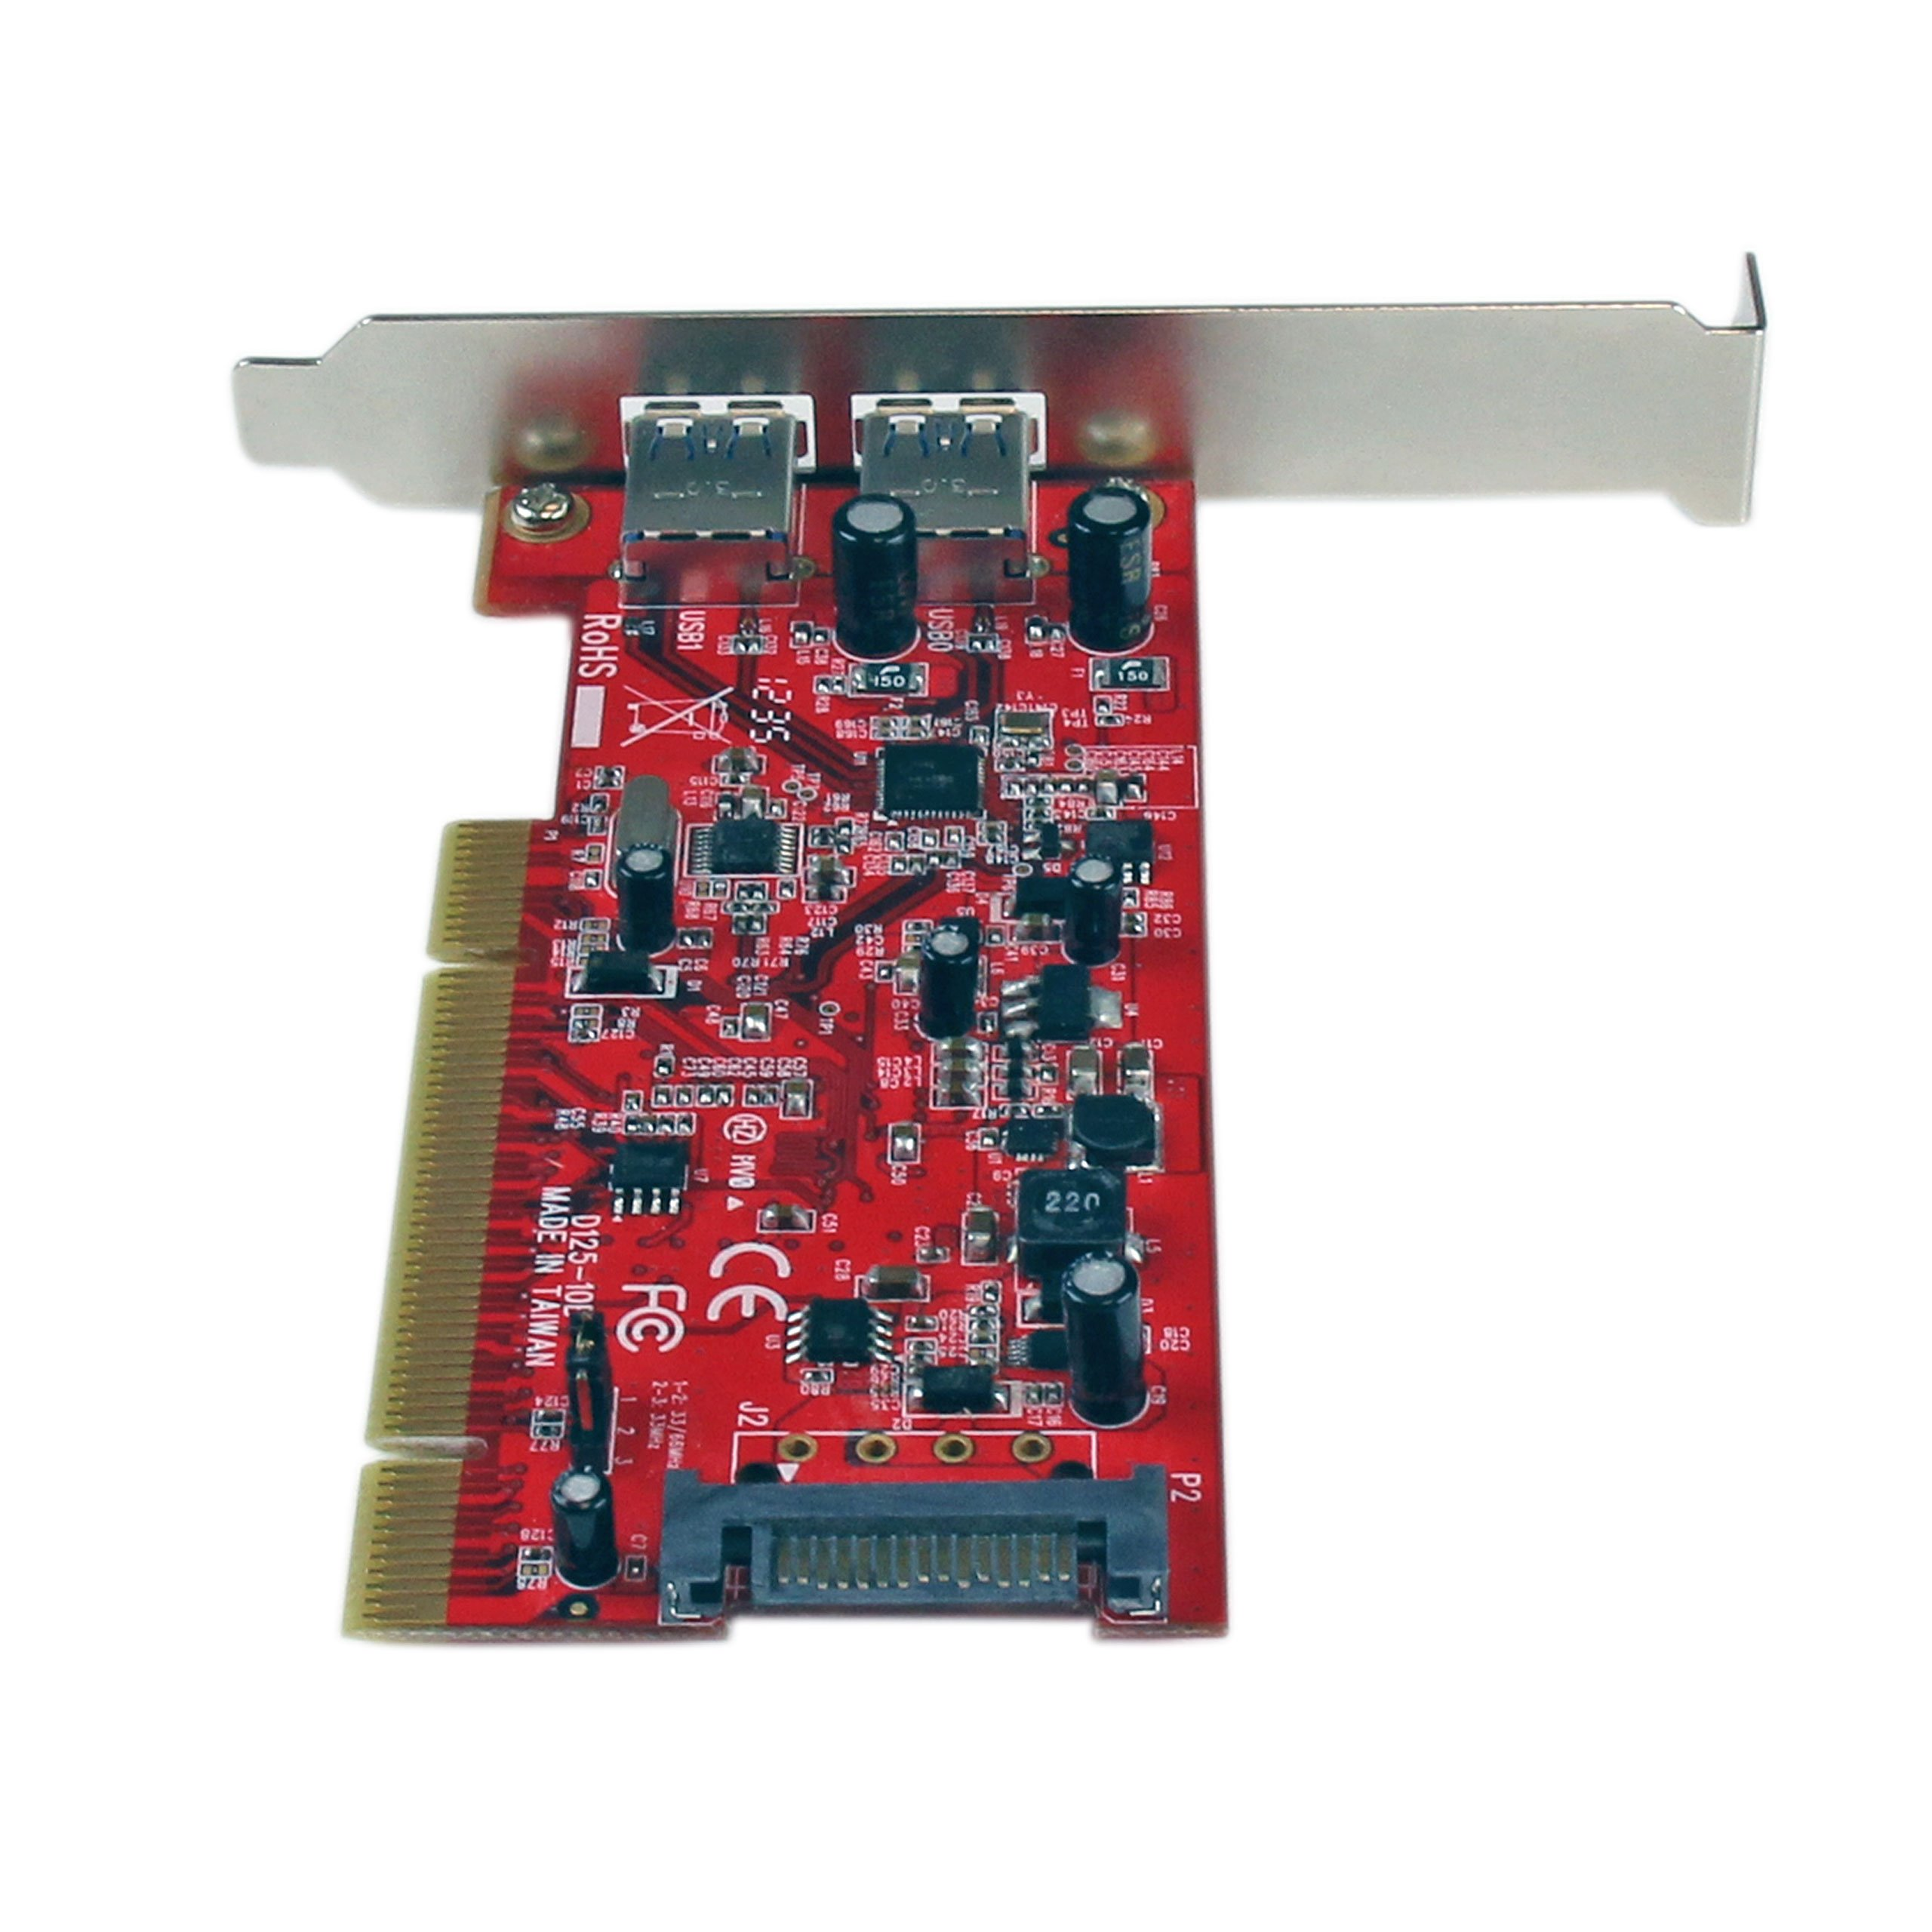 2 Port PCI SuperSpeed USB 3.0 Adapter Card with SATA Power - Dual Port PCI USB 3 Controller Card by StarTech (Image #4)